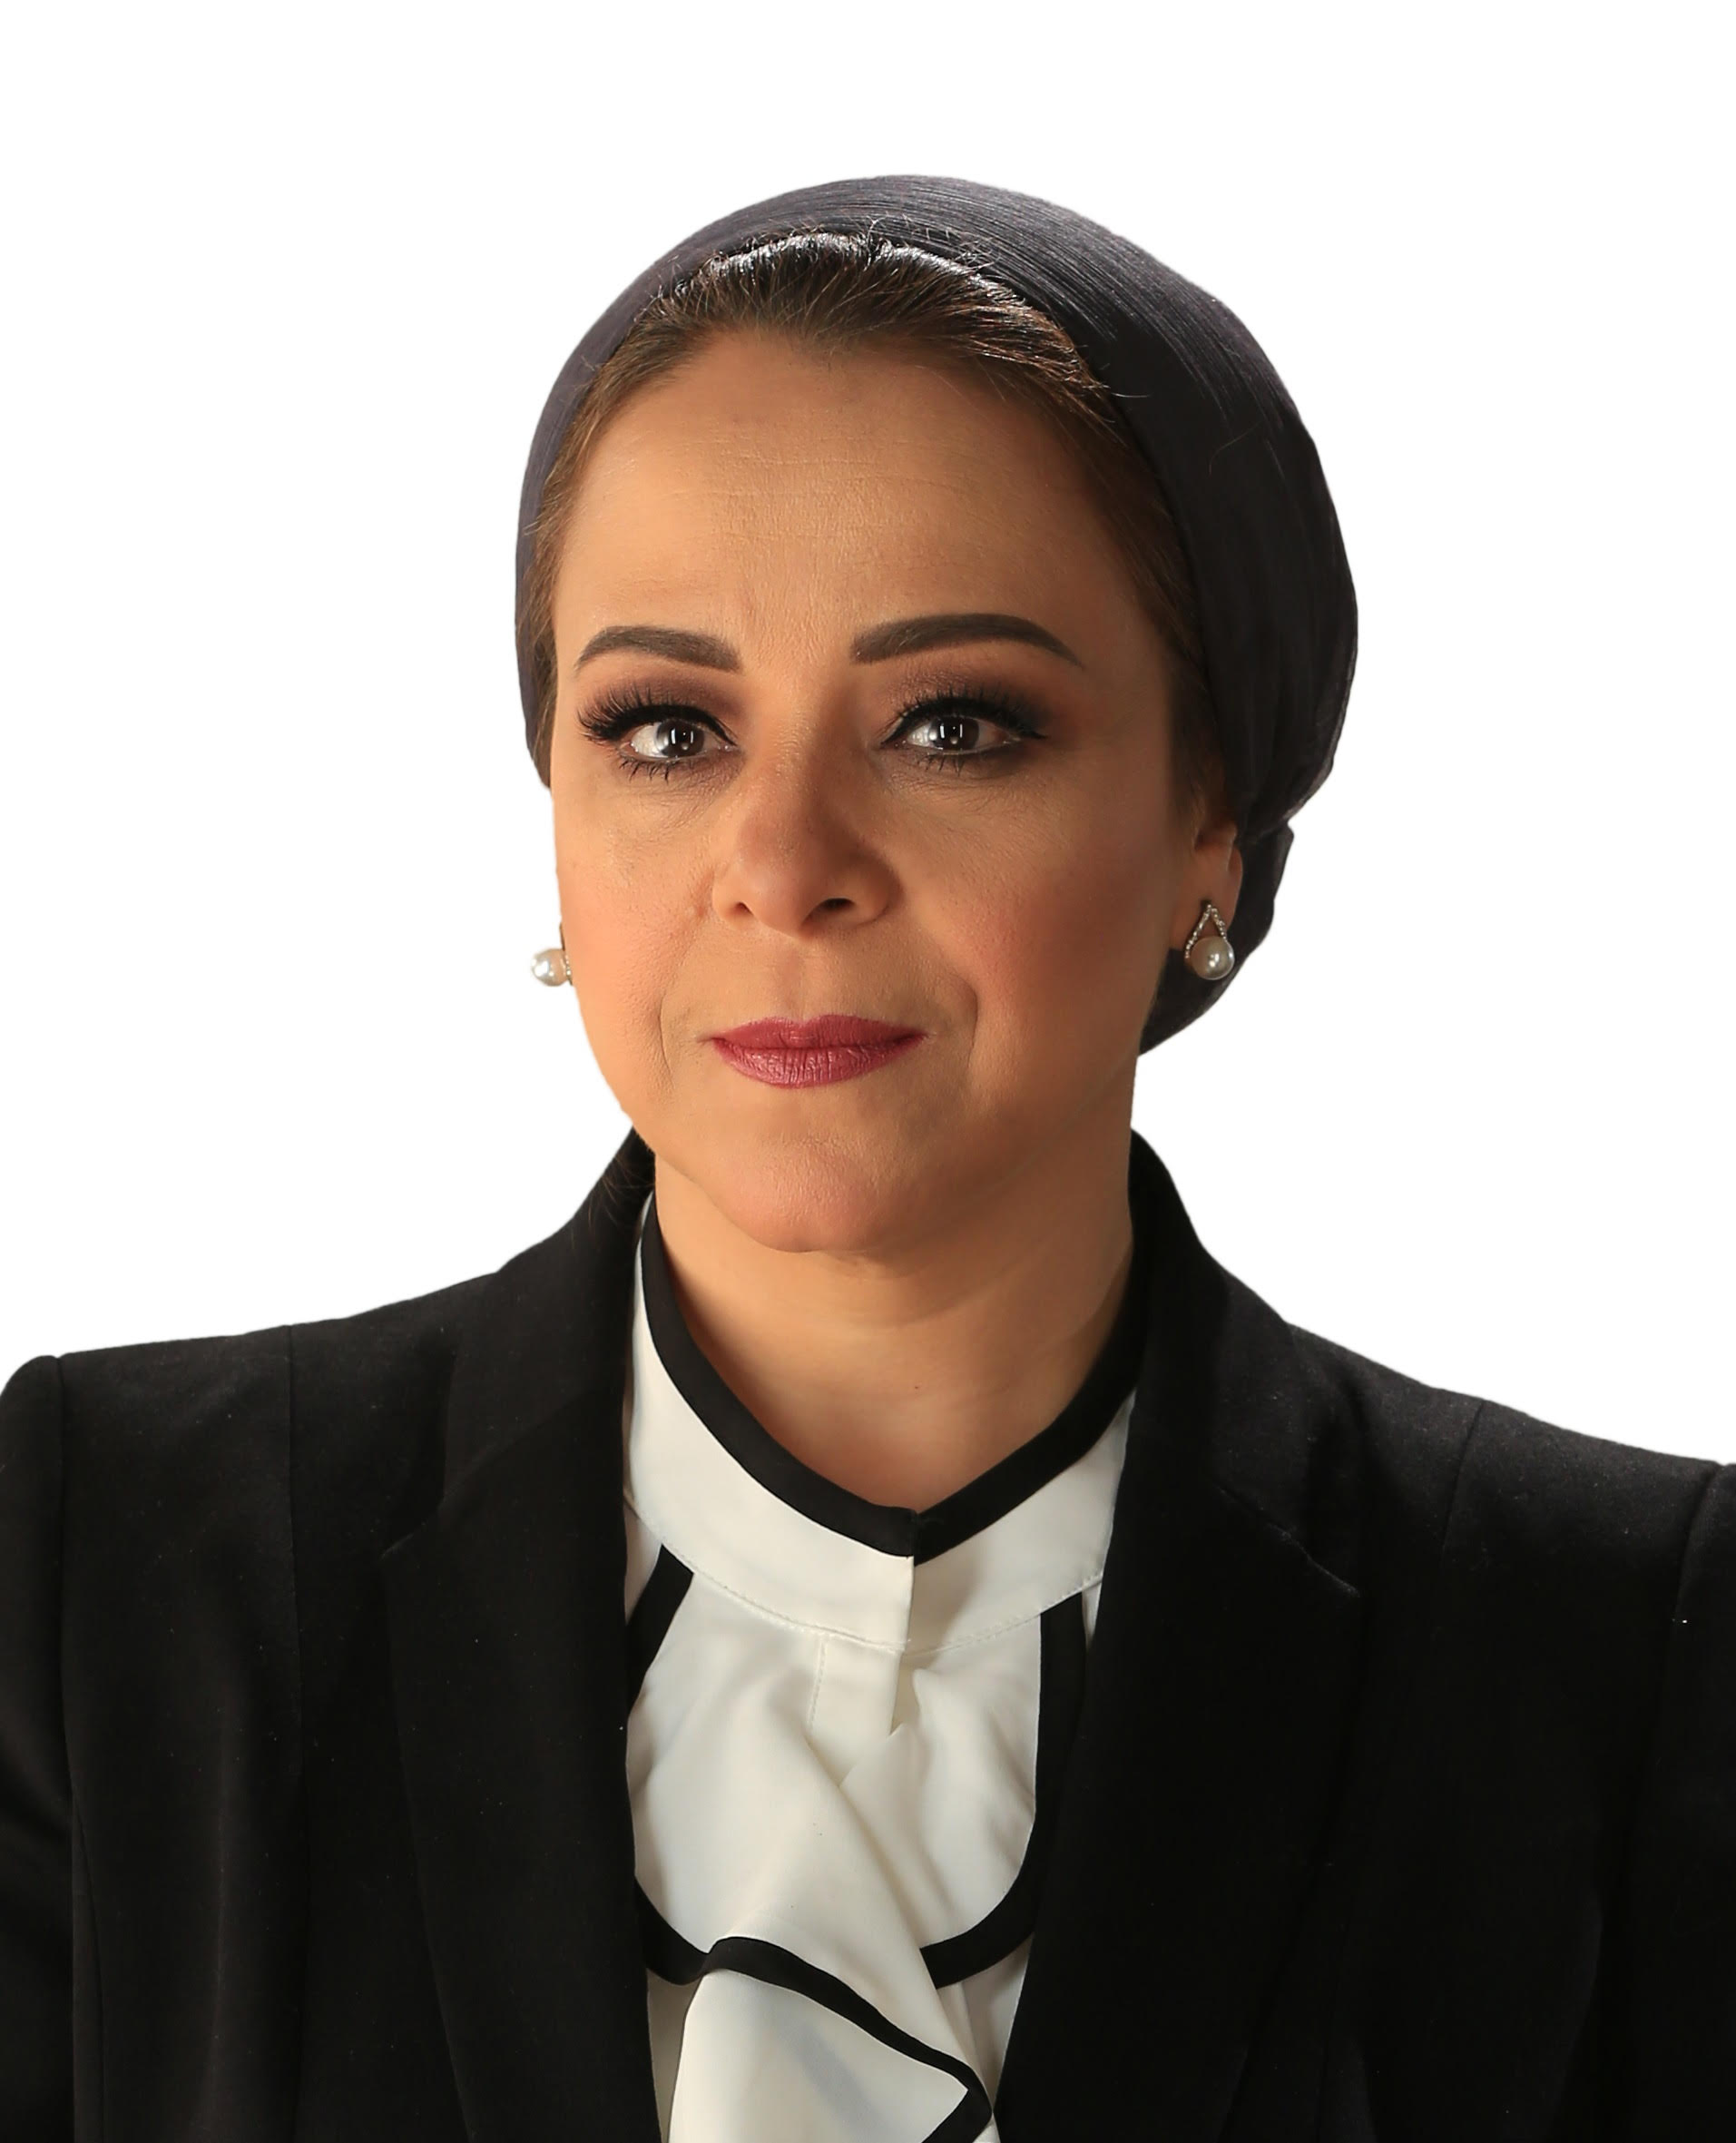 First woman to head Egypt's National Council of Human Rights, 11 female members out of total 27